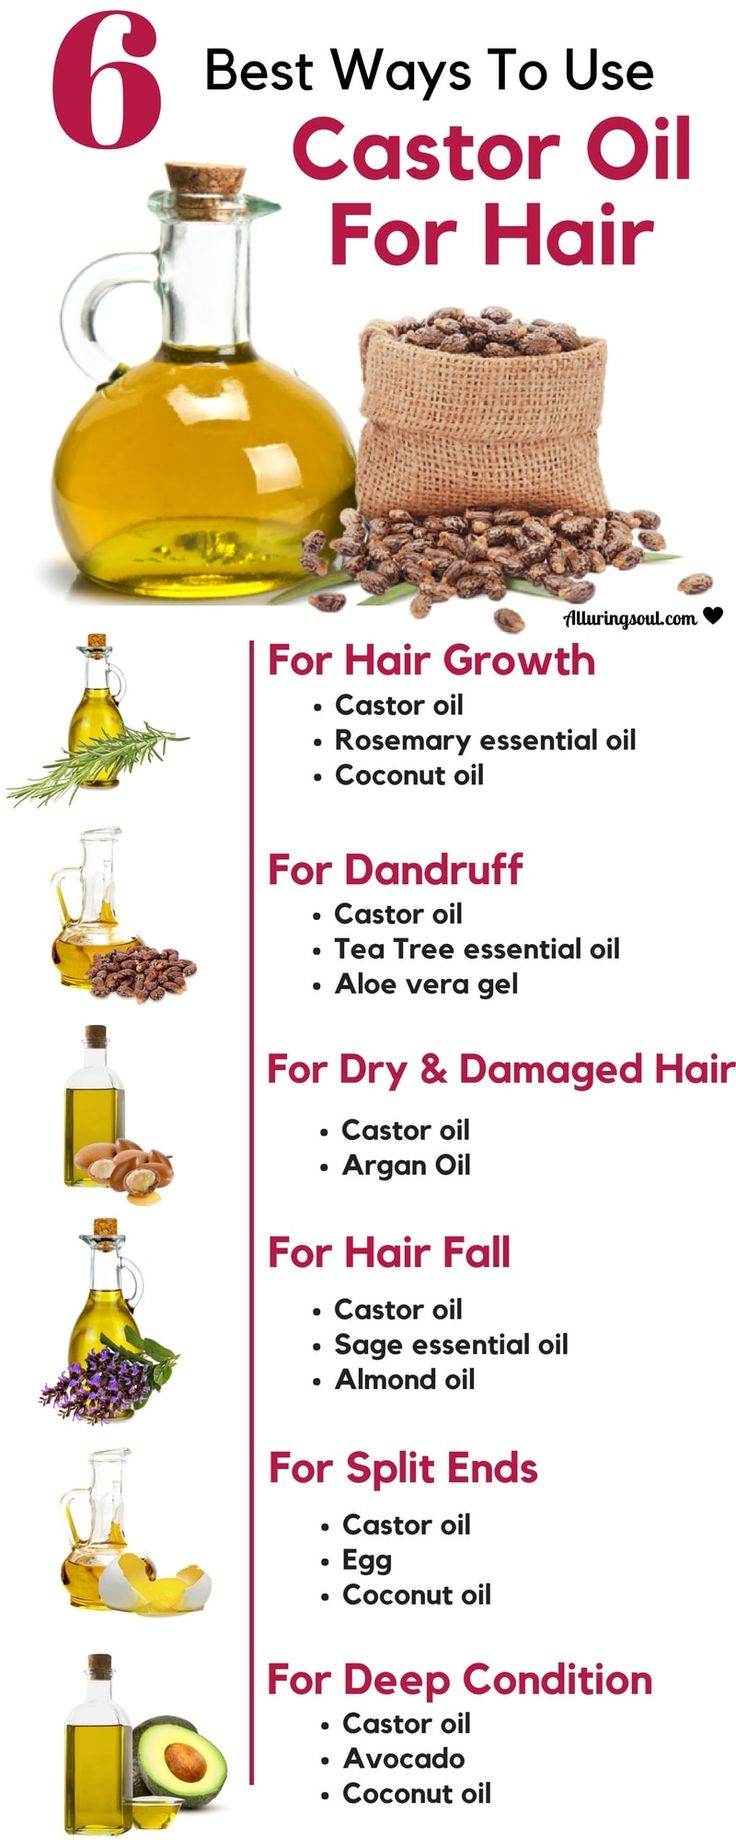 All you need is castor oil for hair. It nourishes hair roots, promotes hair growth, deep conditions hair and solves many other problems. Check it out, how can it help you.